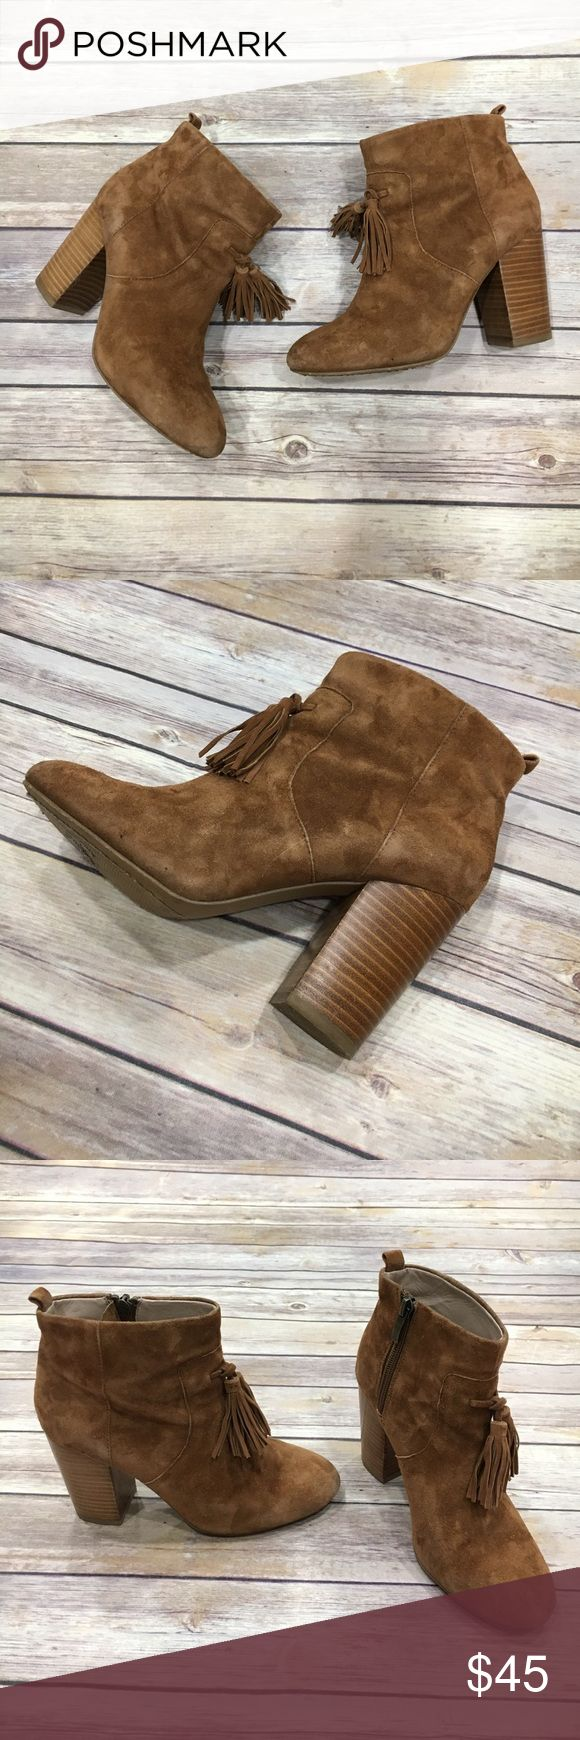 """French Connection Camel Suede Bootie French Connection brown suede bootie with fringe (tassel) detail in the front in a size 5.5. This bootie is perfect for any occasion. About a 3"""" heel. French Connection Shoes Ankle Boots & Booties"""